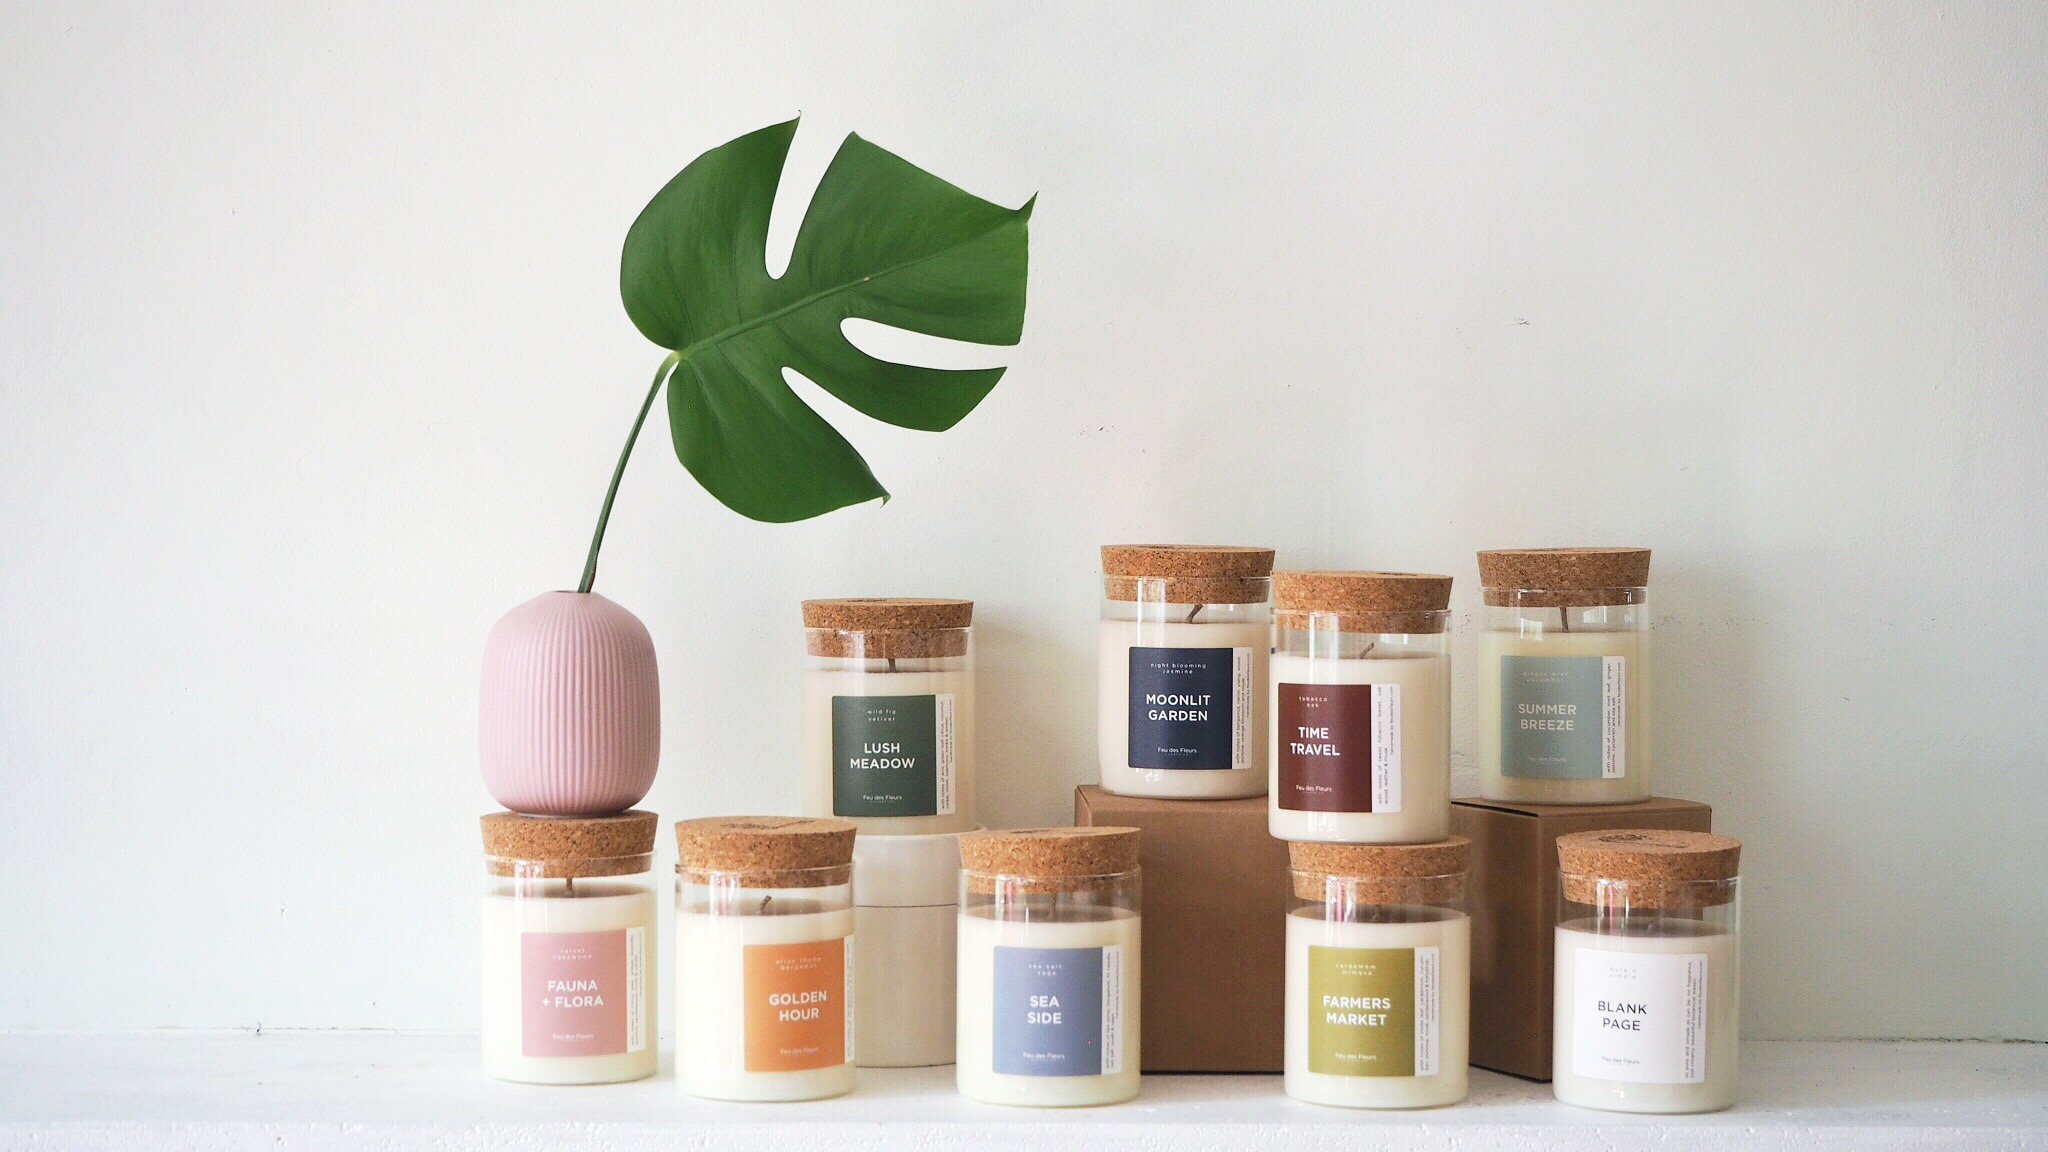 feu des fleurs scented candle collection in glass jars